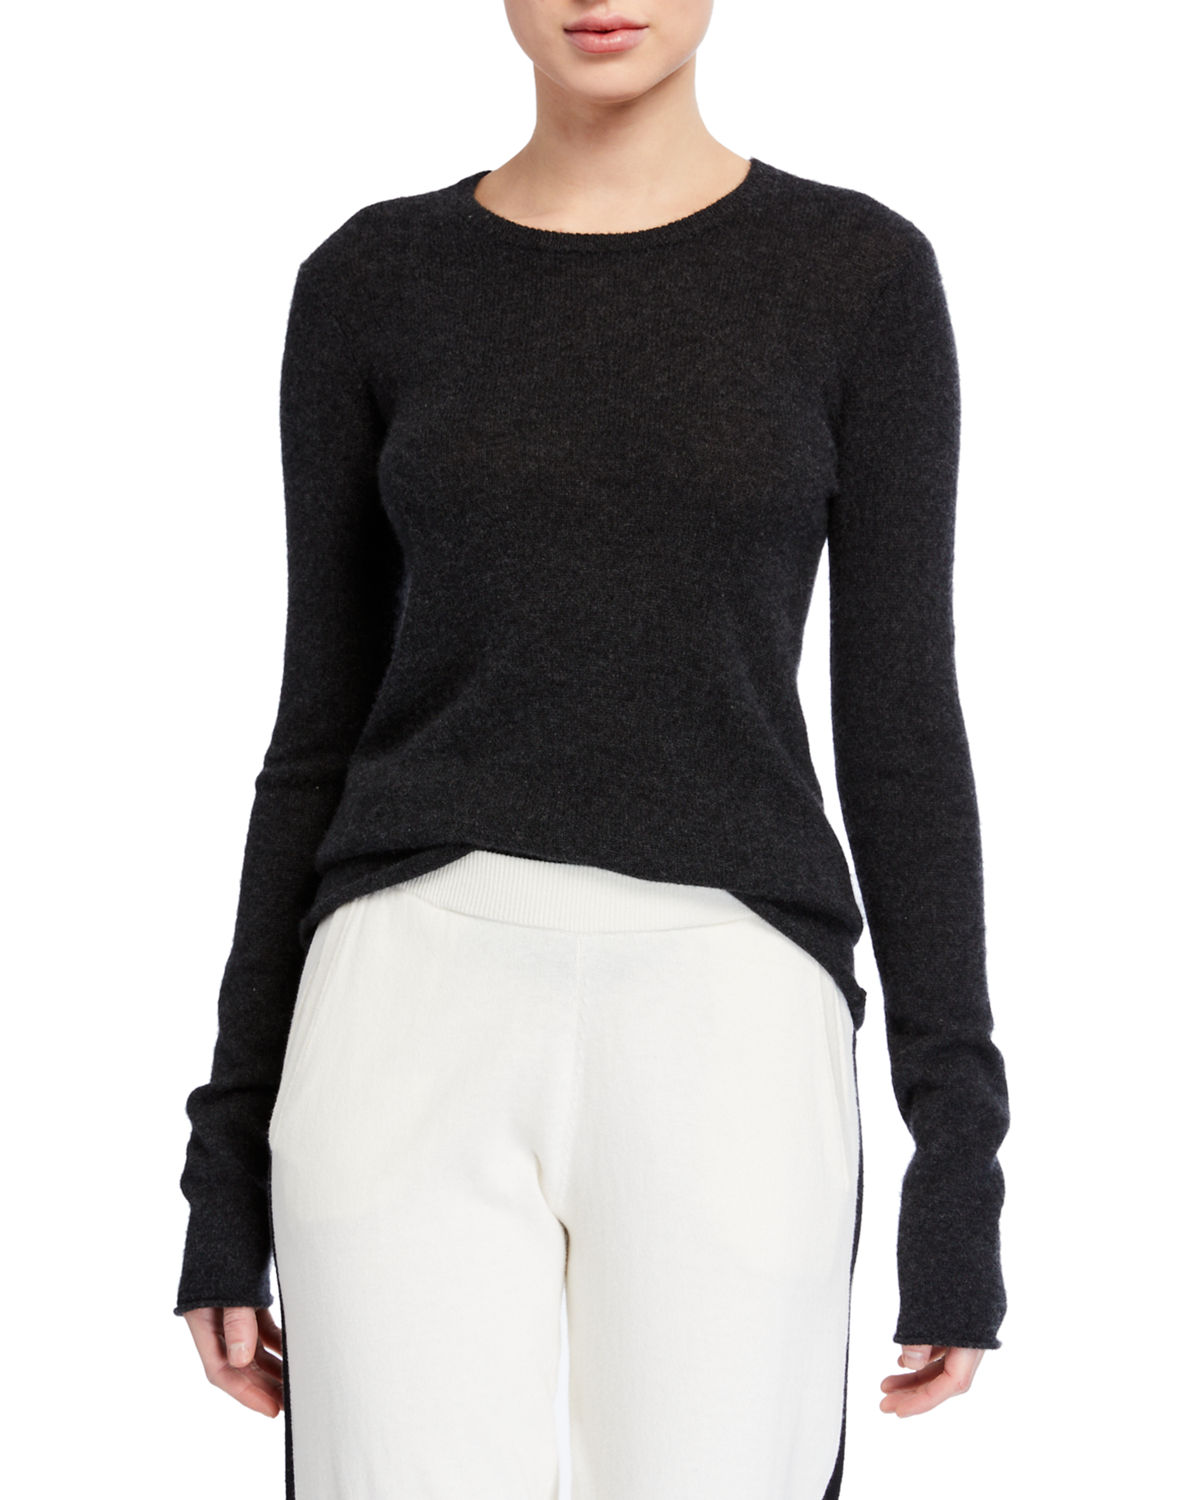 Atm Anthony Thomas Melillo Tops CASHMERE LONG-SLEEVE CREWNECK TOP